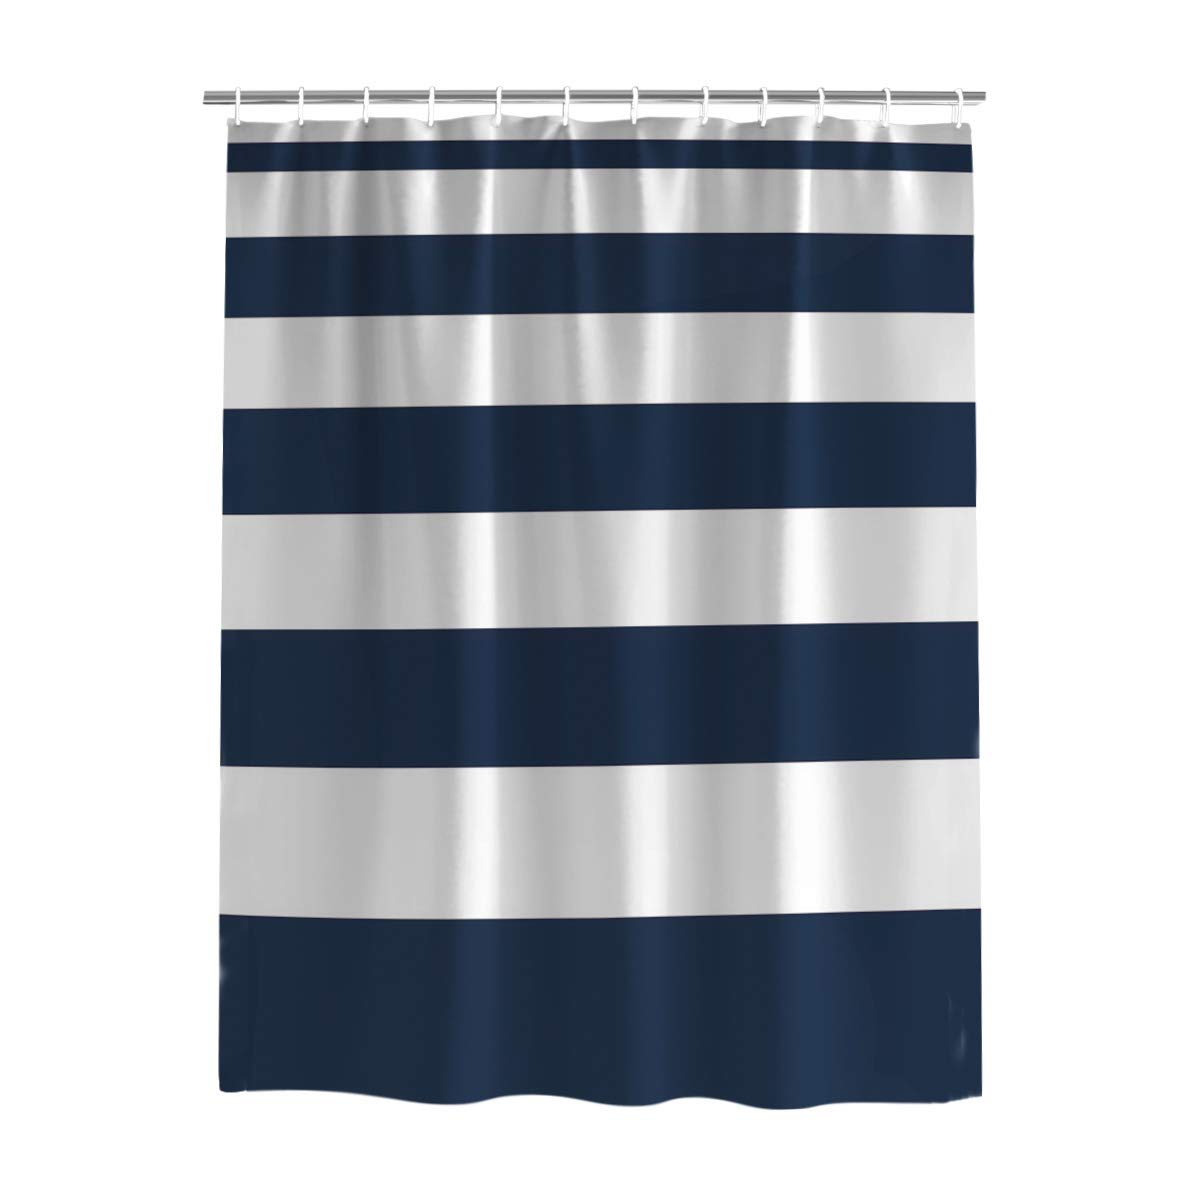 Amazon Plelat Bathroom Shower Curtain With Hooks For Christmas Bath Room DecorSimple Stripe Blue And WhiteFabric Washable Extra Long Curtains72 X 78